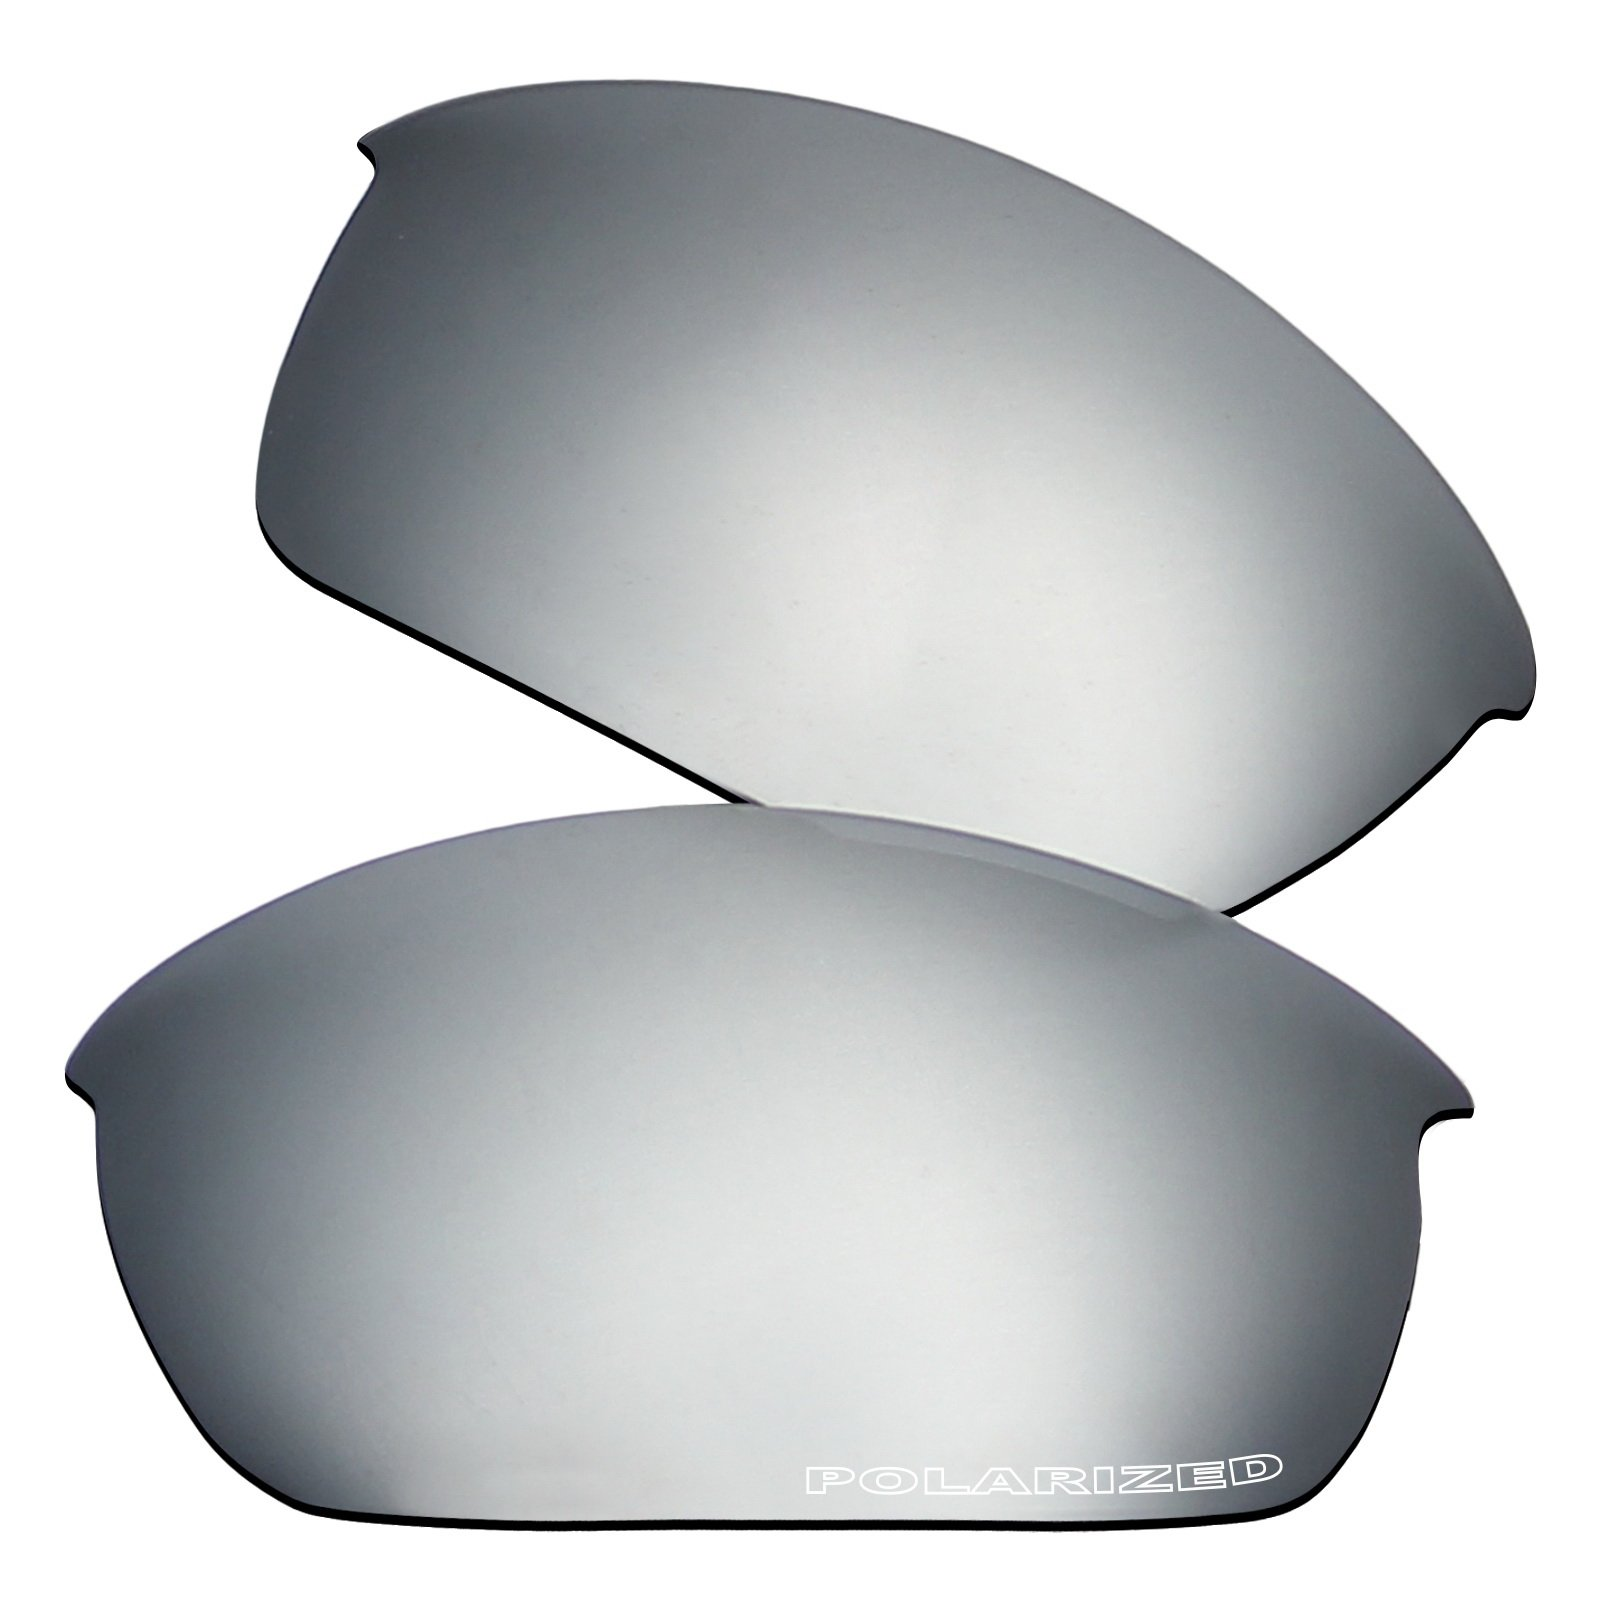 New 1.8mm Thick UV400 Replacement Lenses for Oakley Flak Jacket Sunglass - Options